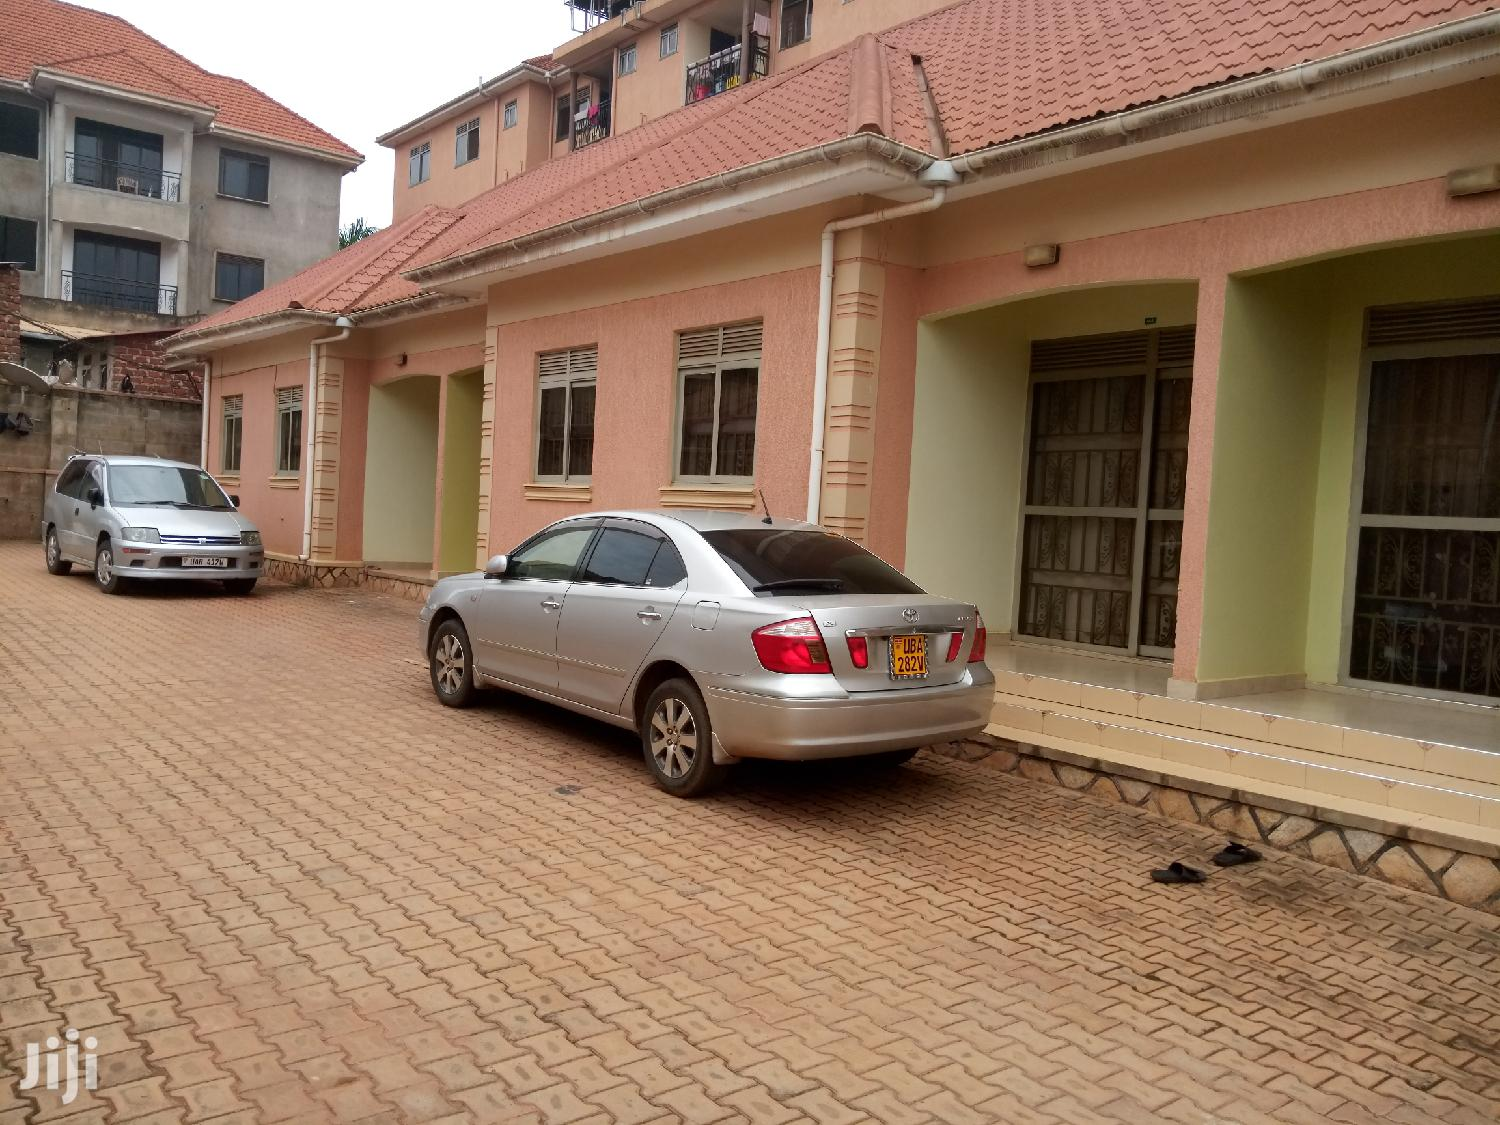 Kiwatule Fantastic One Bedroom House For Rent | Houses & Apartments For Rent for sale in Kampala, Central Region, Uganda